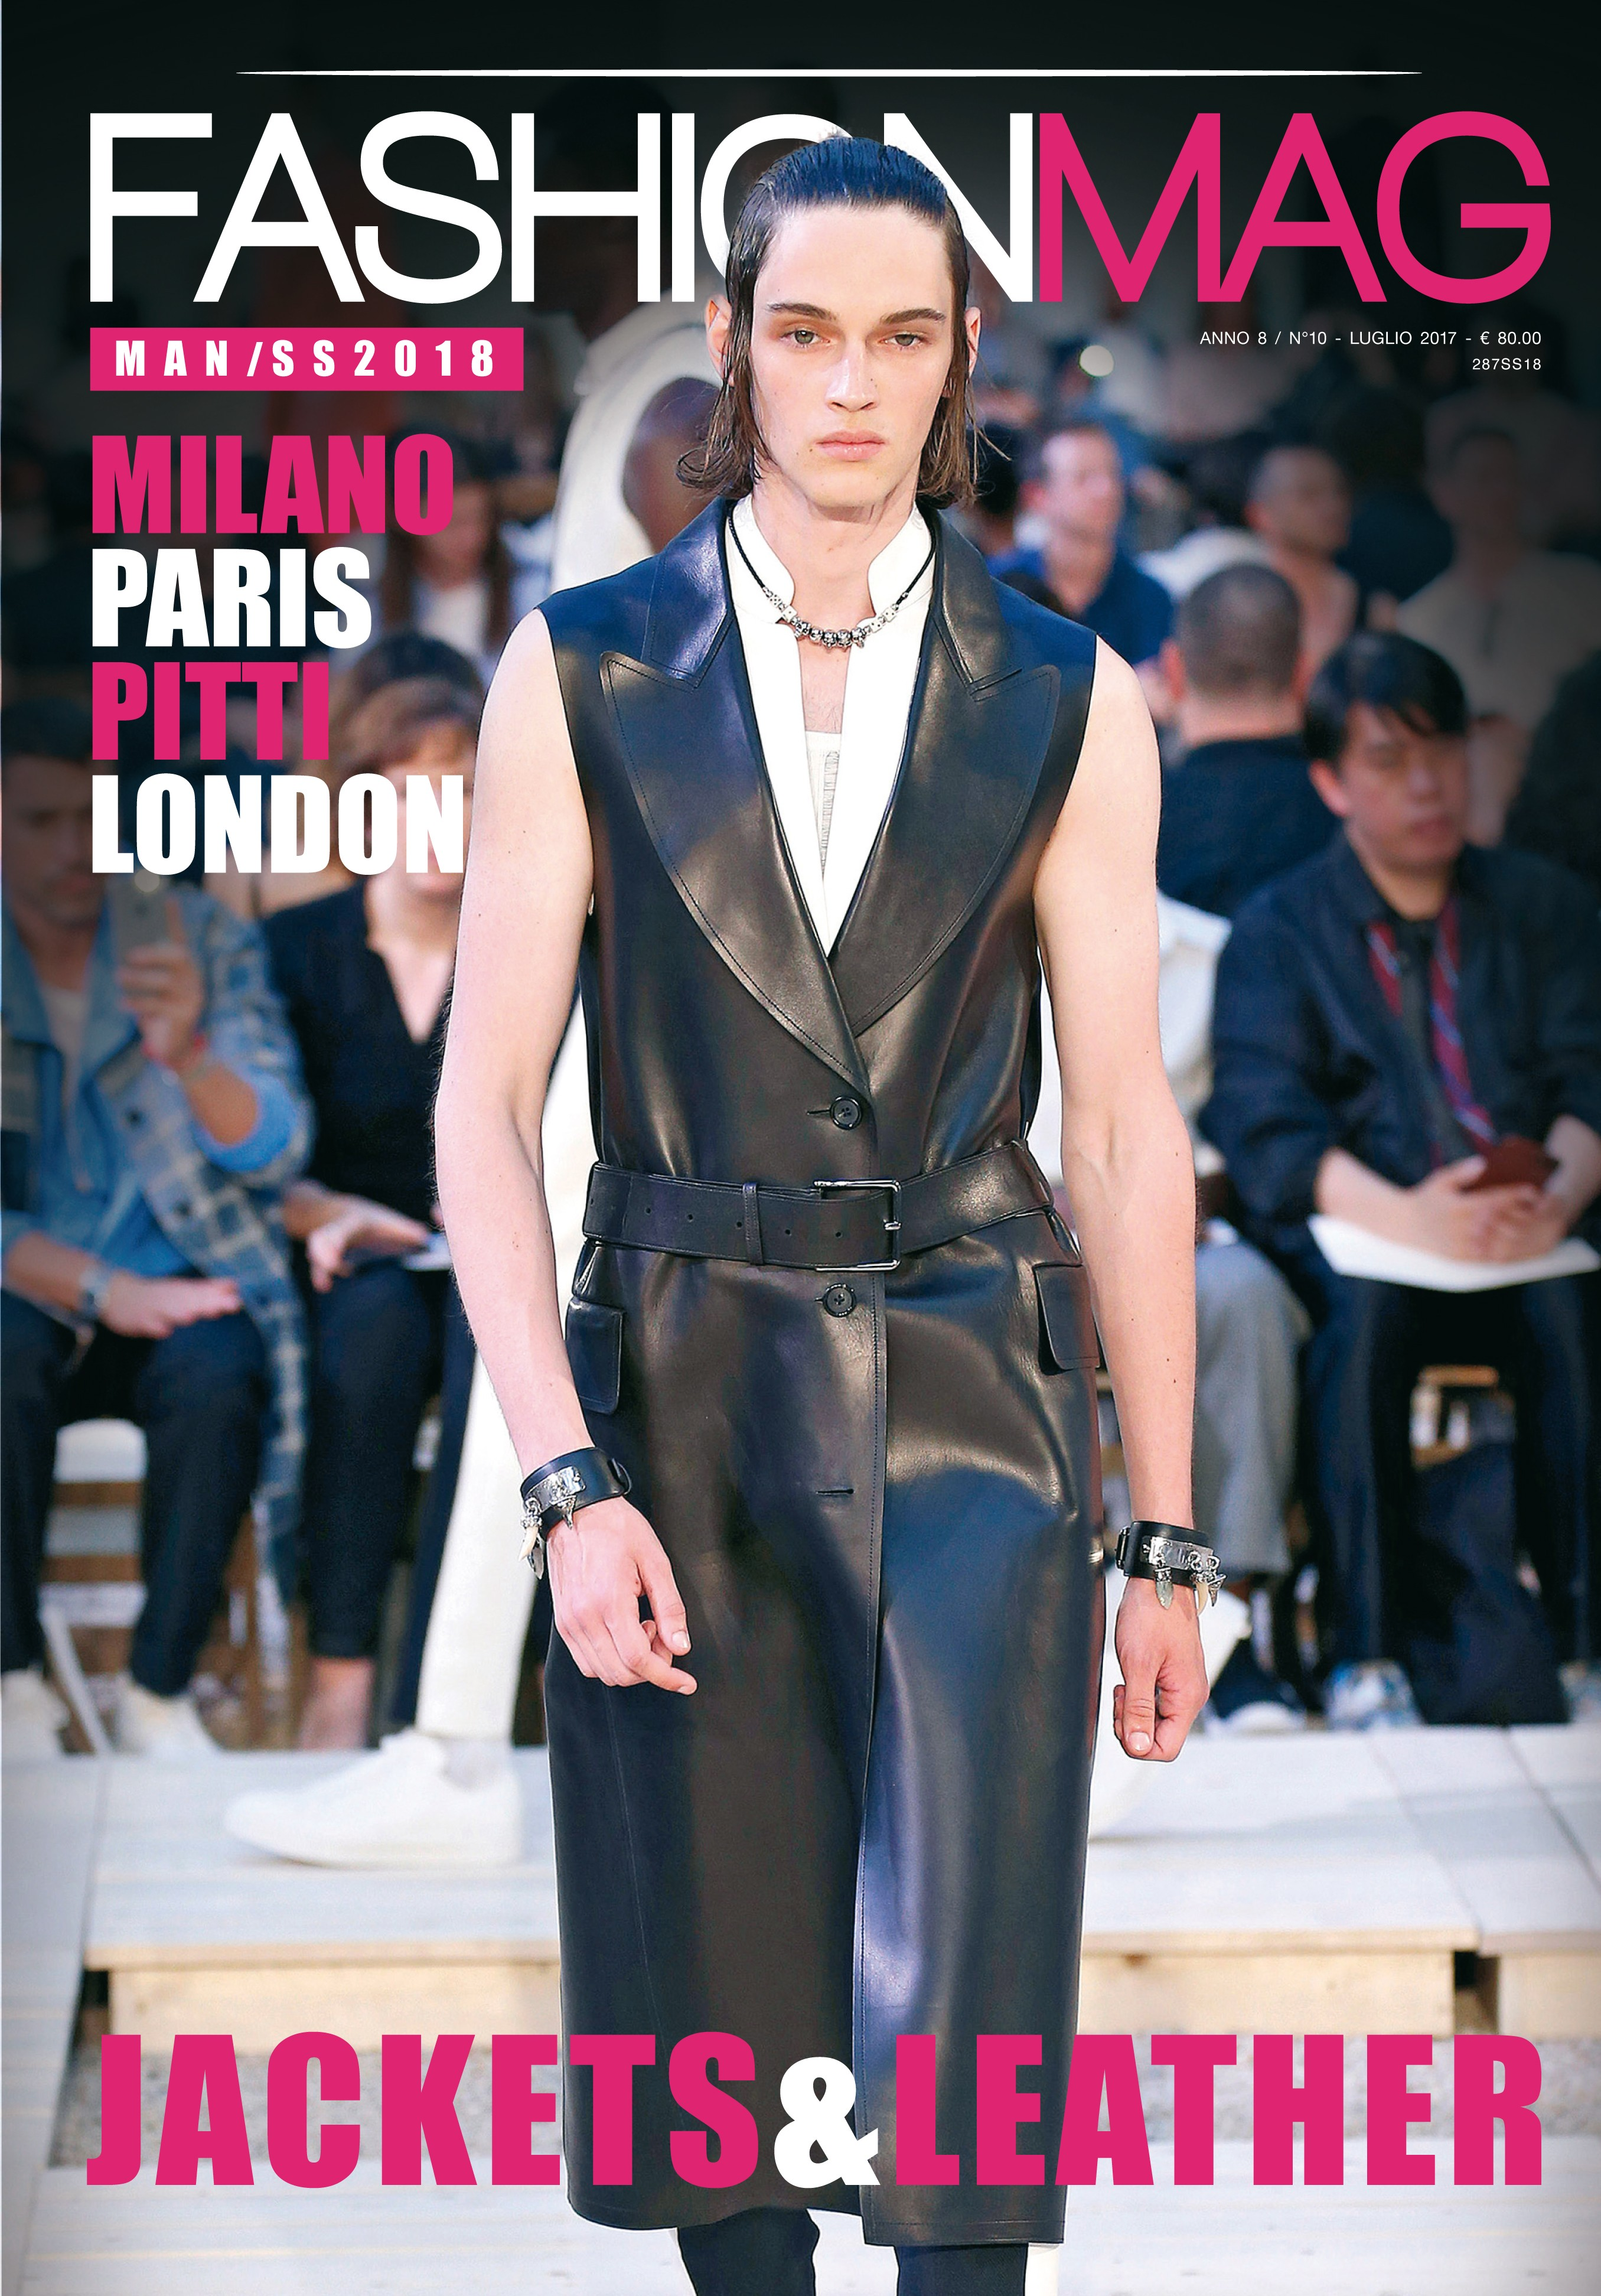 FASHIONMAG MAN JACKETS & LEATHER